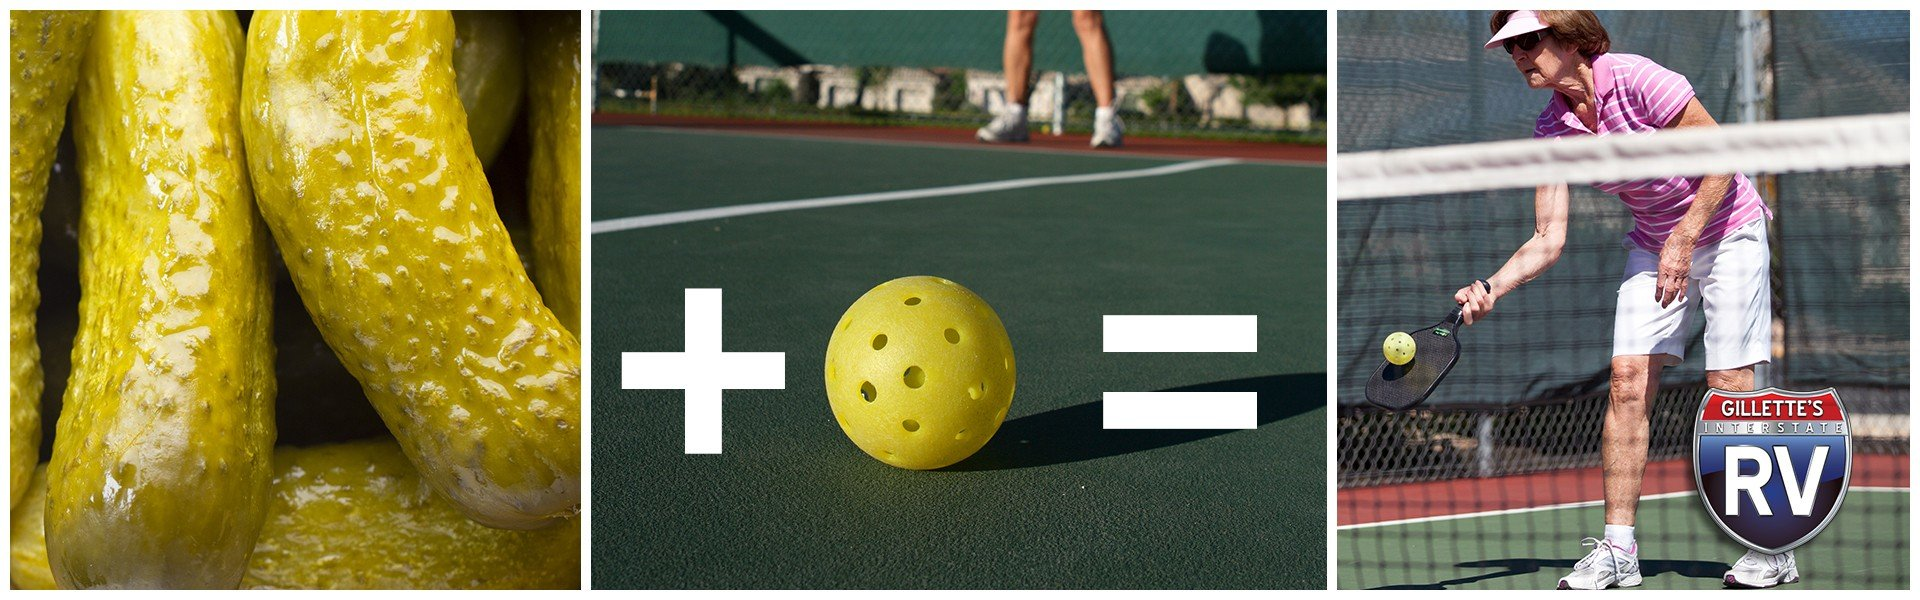 Pickles plus ball equals woman playing a game called pickleball